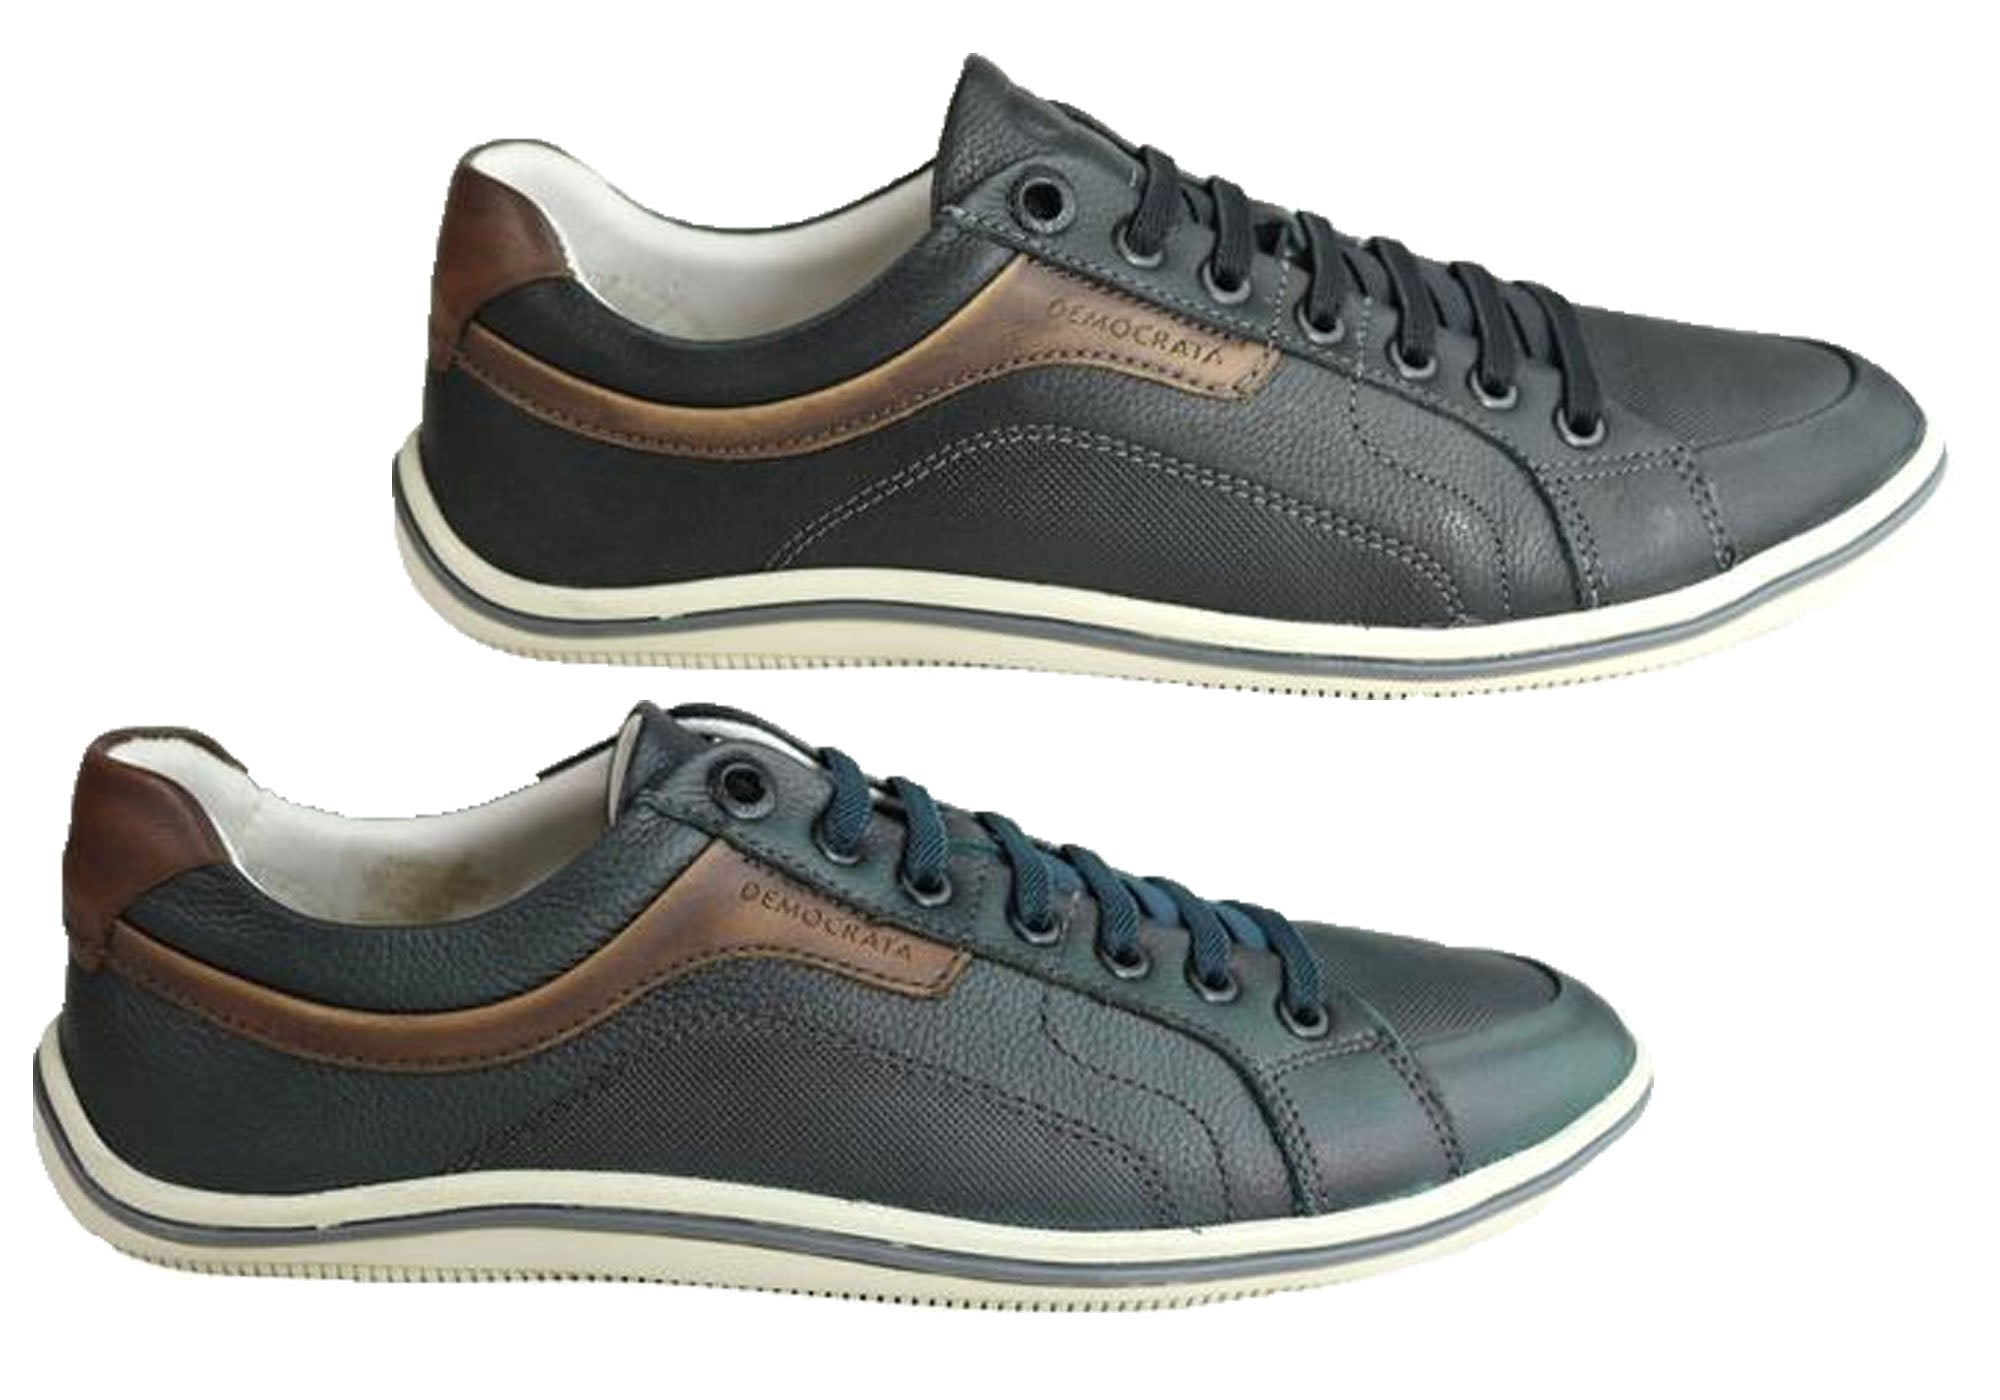 NEW-DEMOCRATA-MILES-MENS-LEATHER-SLIP-ON-CASUAL-SHOES-MADE-IN-BRAZIL